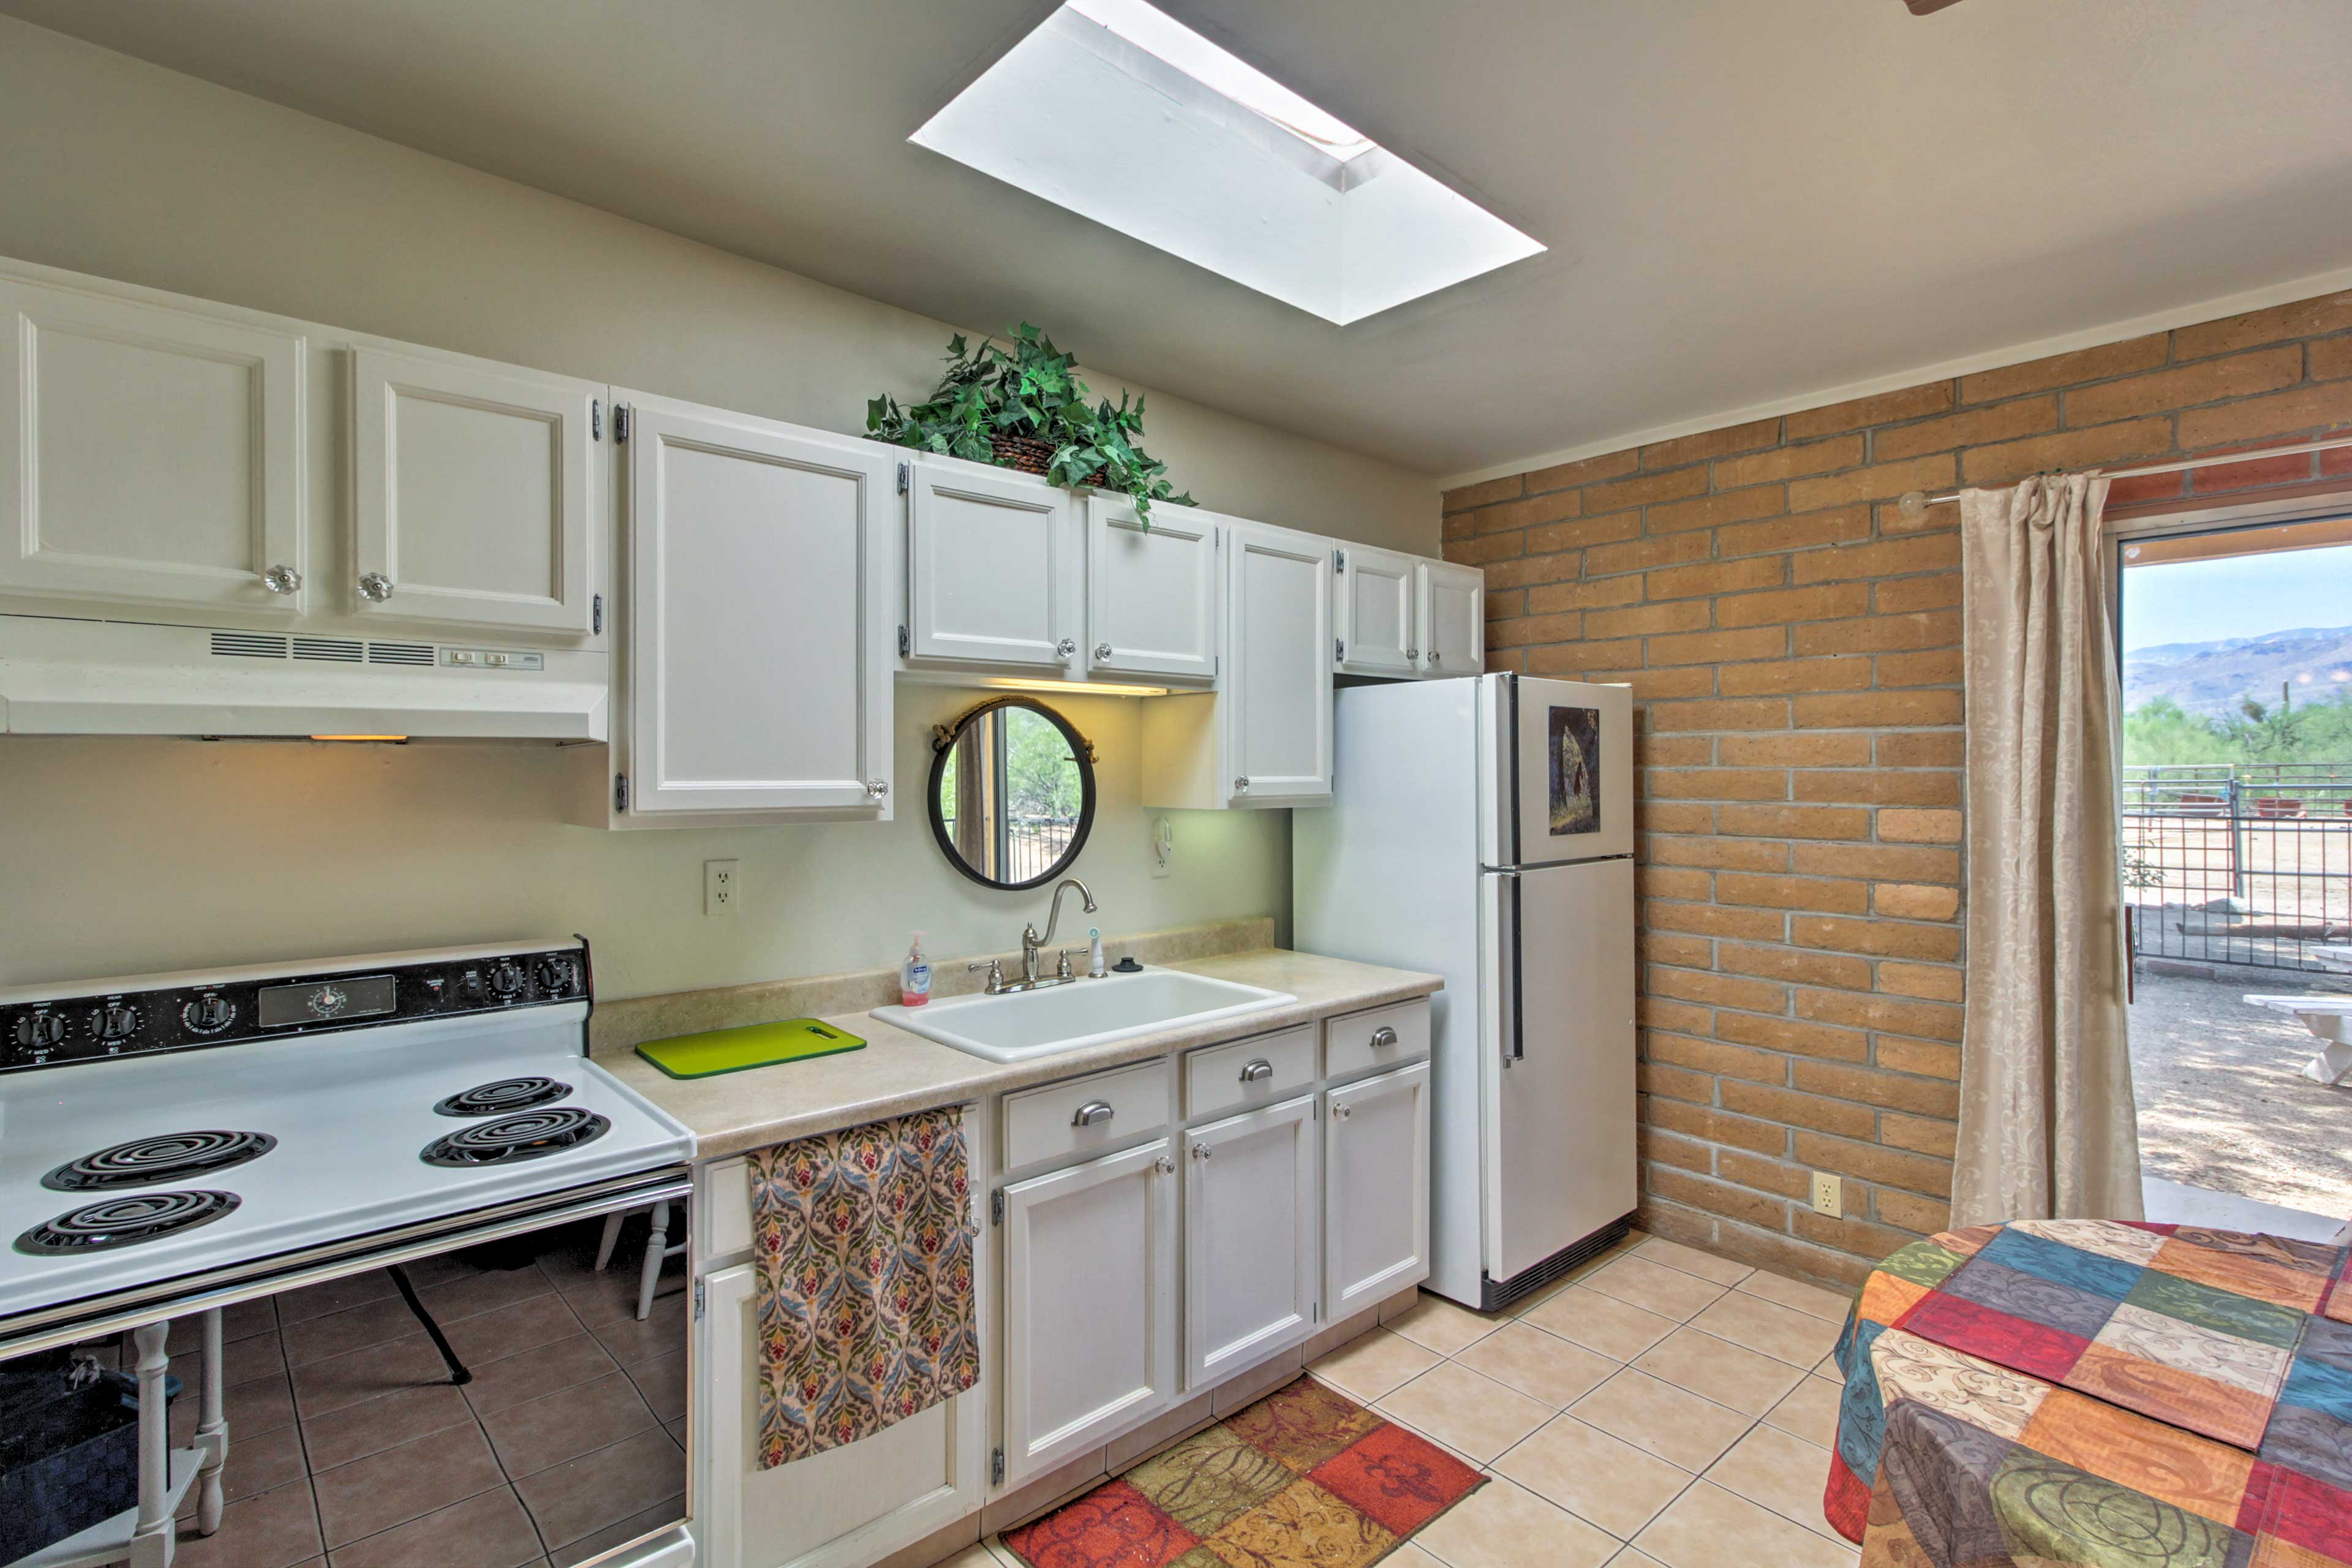 Make all of your favorite dishes in the fully equipped kitchen.